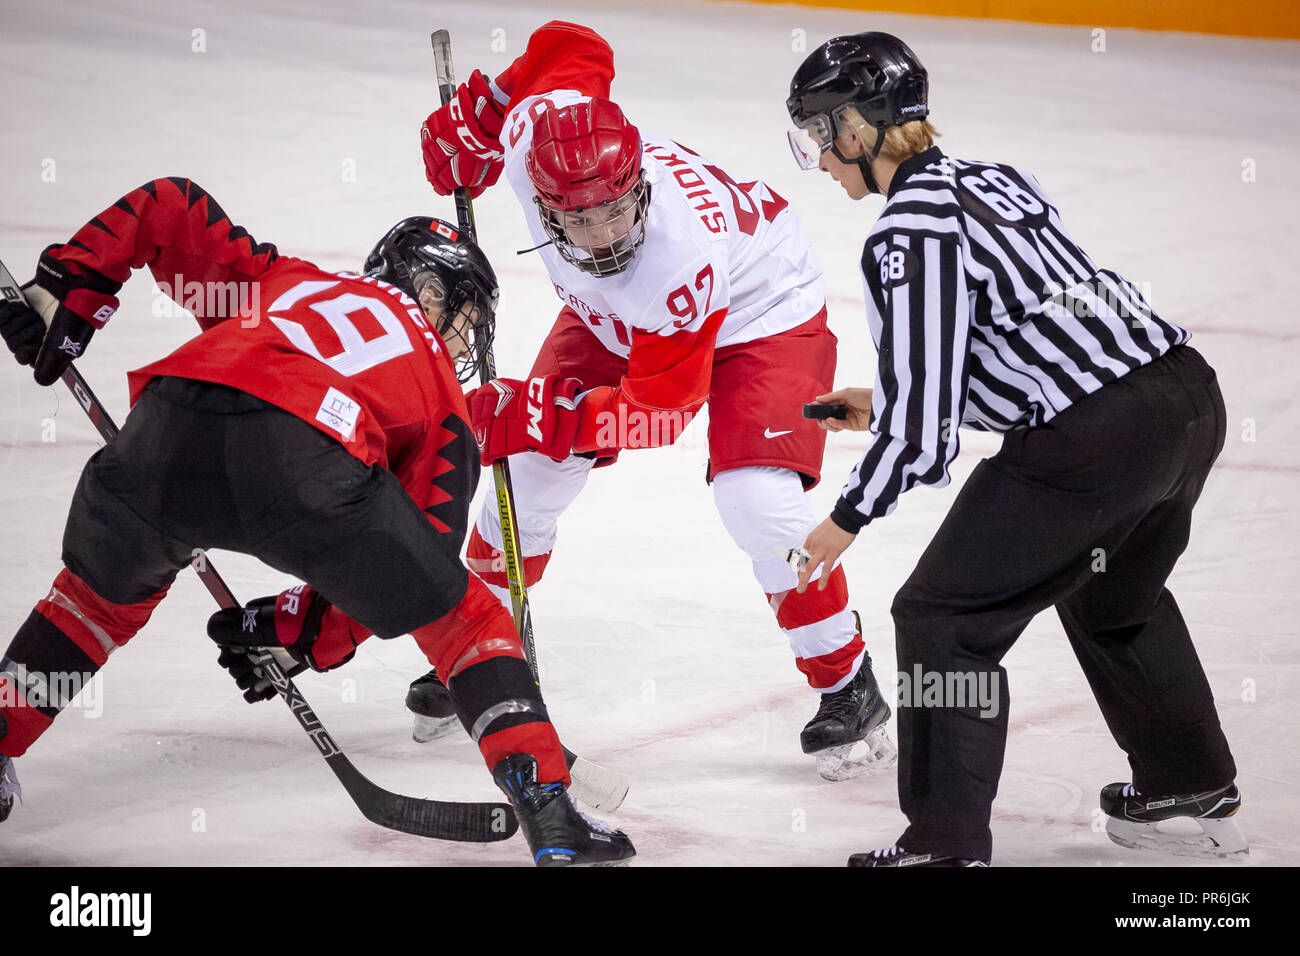 Anna Shokhina (OAR) and Brianne Jenner (CAN) faceoff during Team OAR vs Team Cananda competing in Women's hockey at the Olympic Winter Games PyeongCha - Stock Image